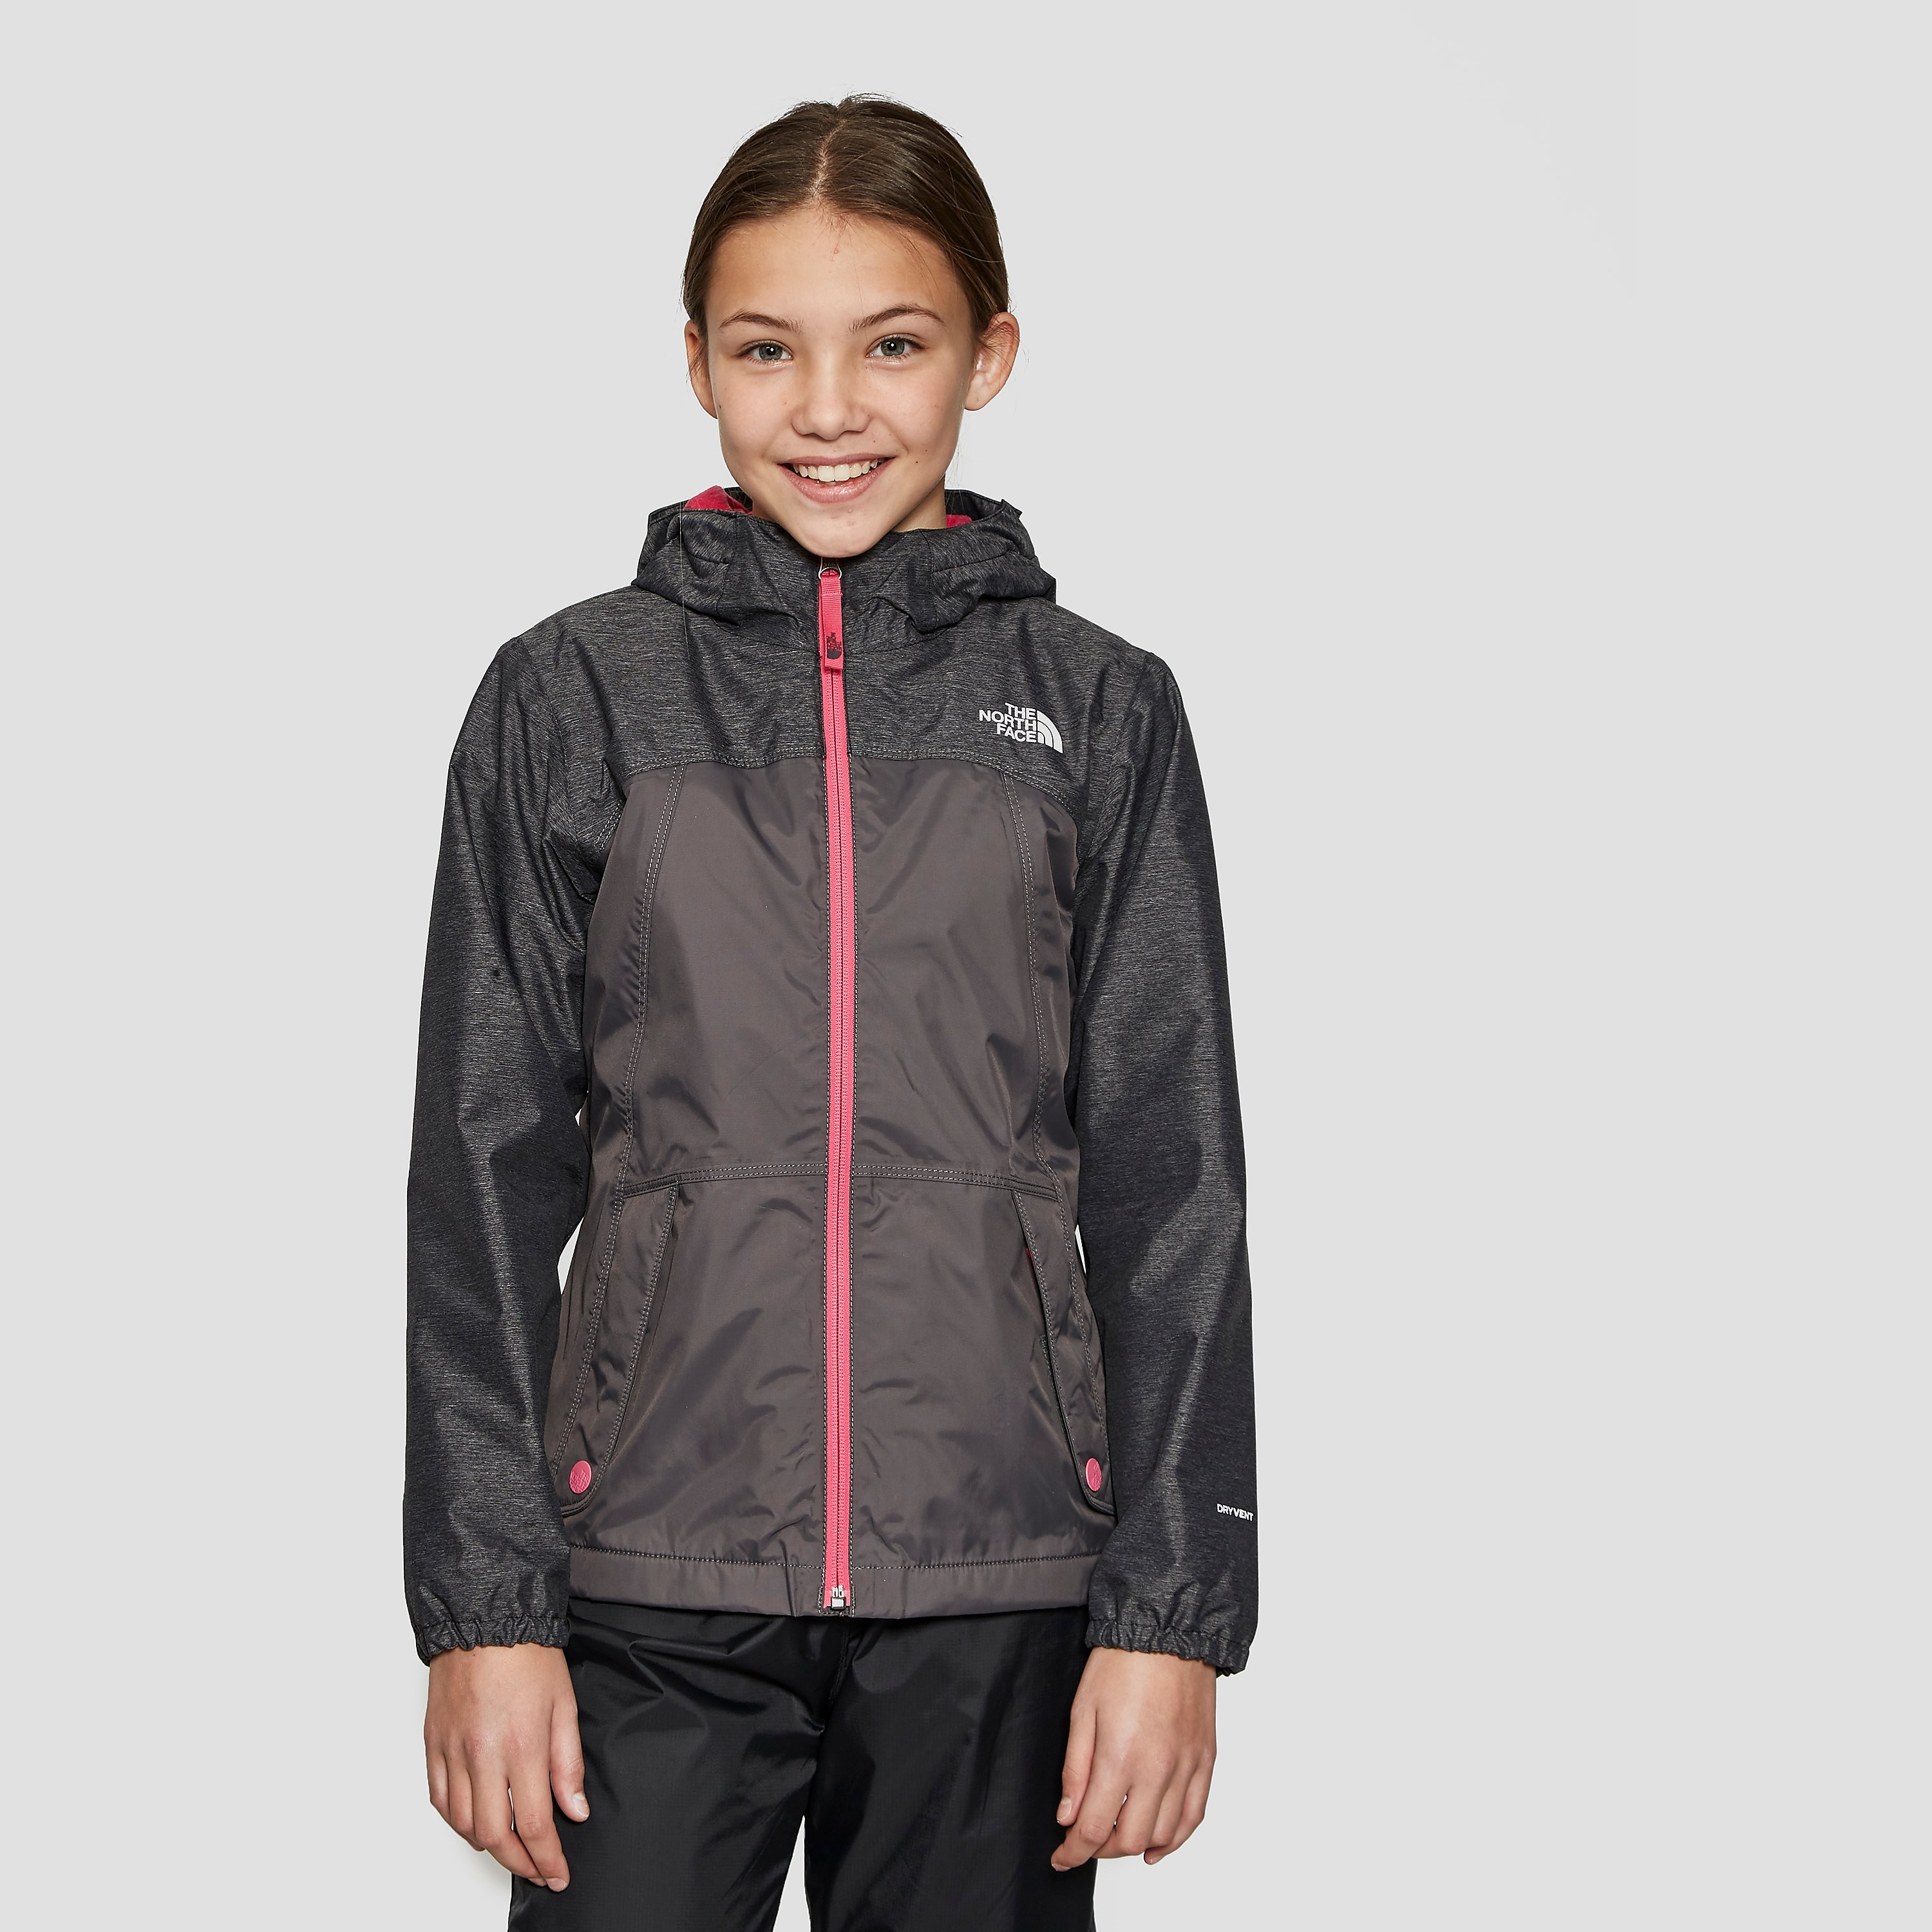 The North Face Warm Storm Girl's Junior Jacket